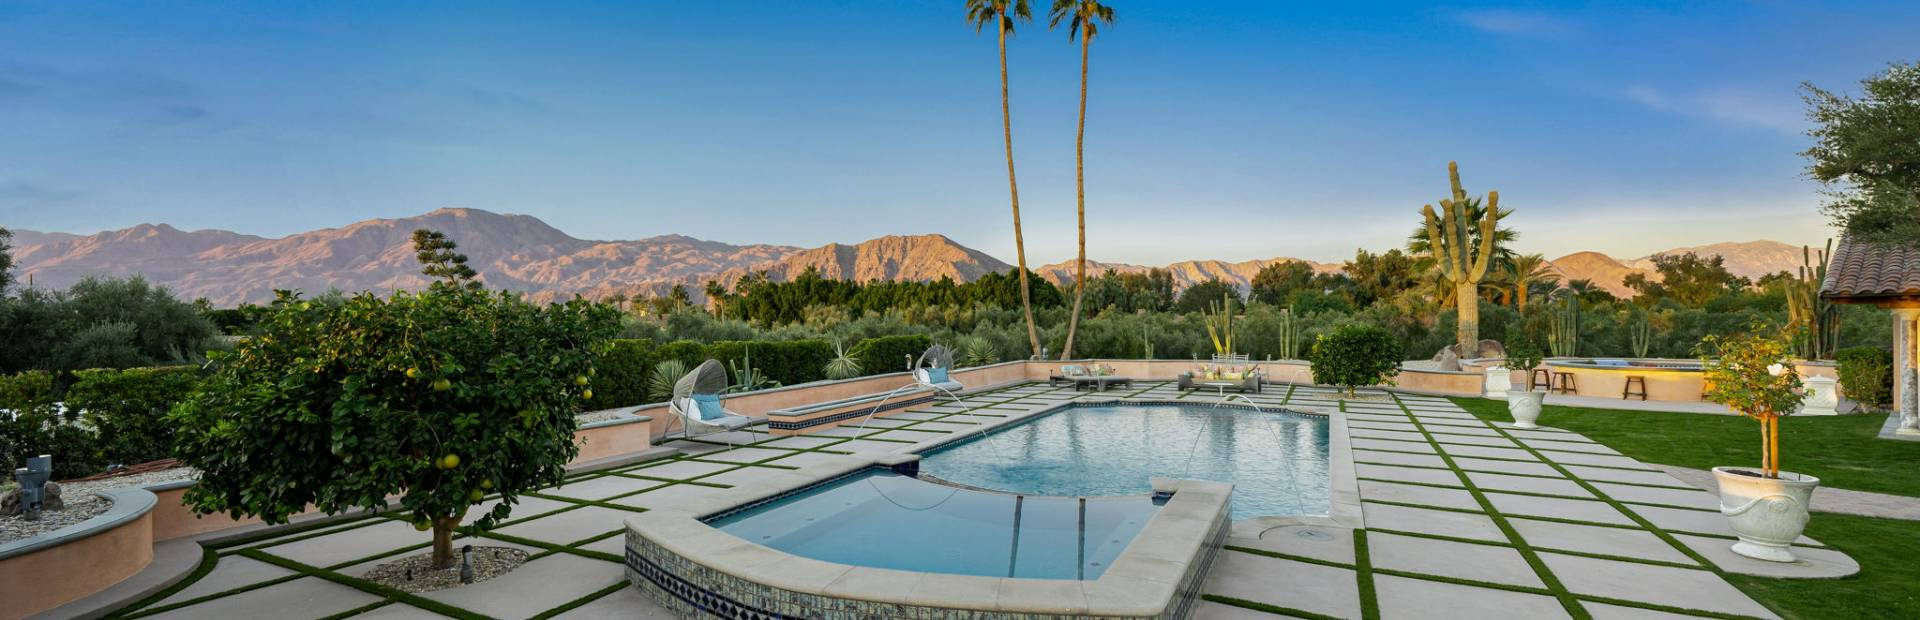 51555 Madison St, La Quinta, California 92253, United States, 3 Bedrooms Bedrooms, ,3 BathroomsBathrooms,Residential,For Sale,Madison St,894871